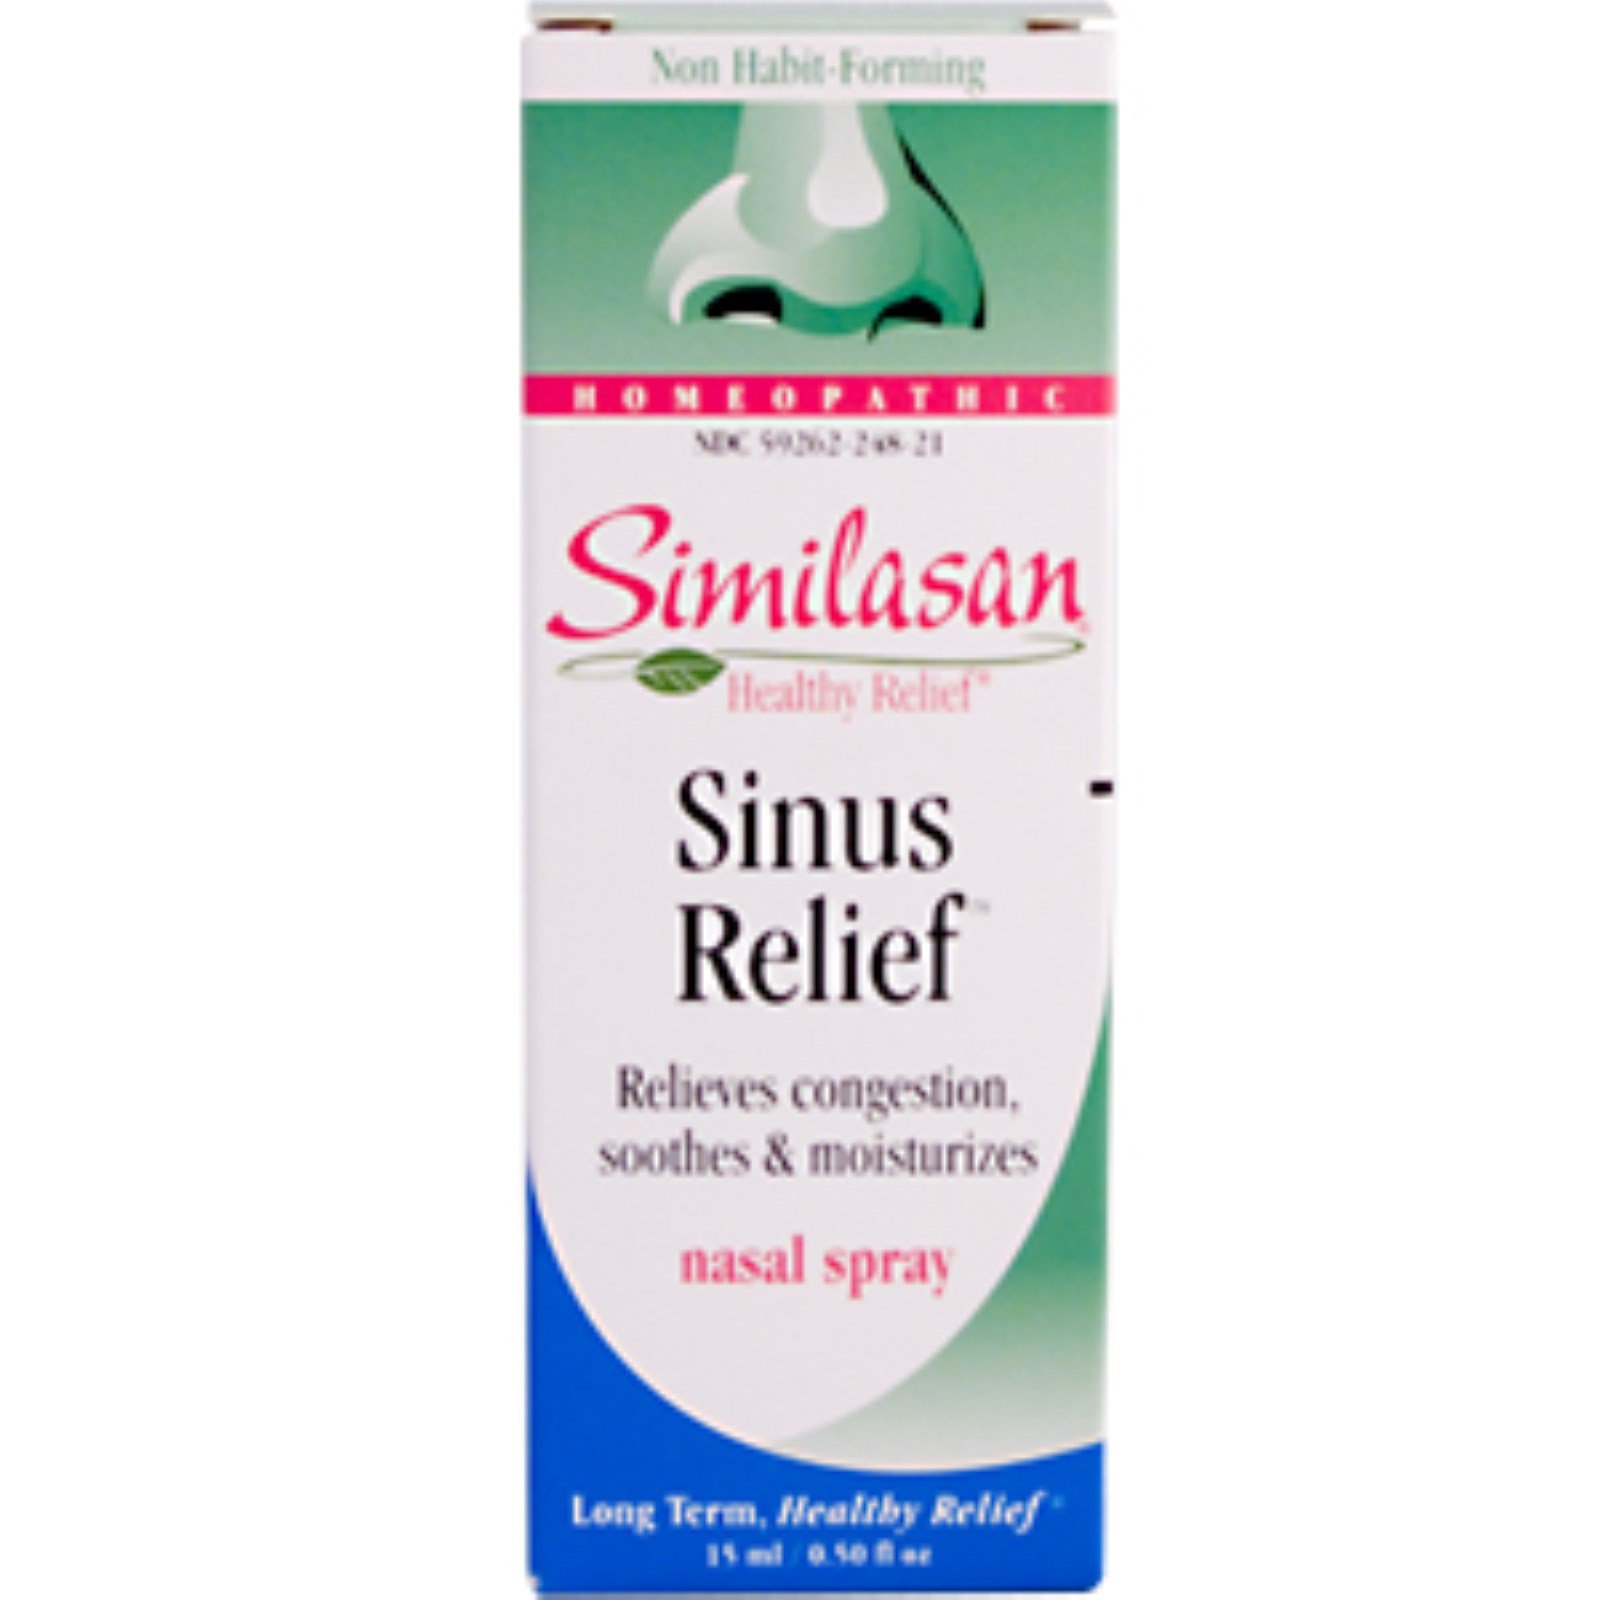 Similasan Sinus Relief Nasal Spray 0 50 fl oz 15 ml iHerb